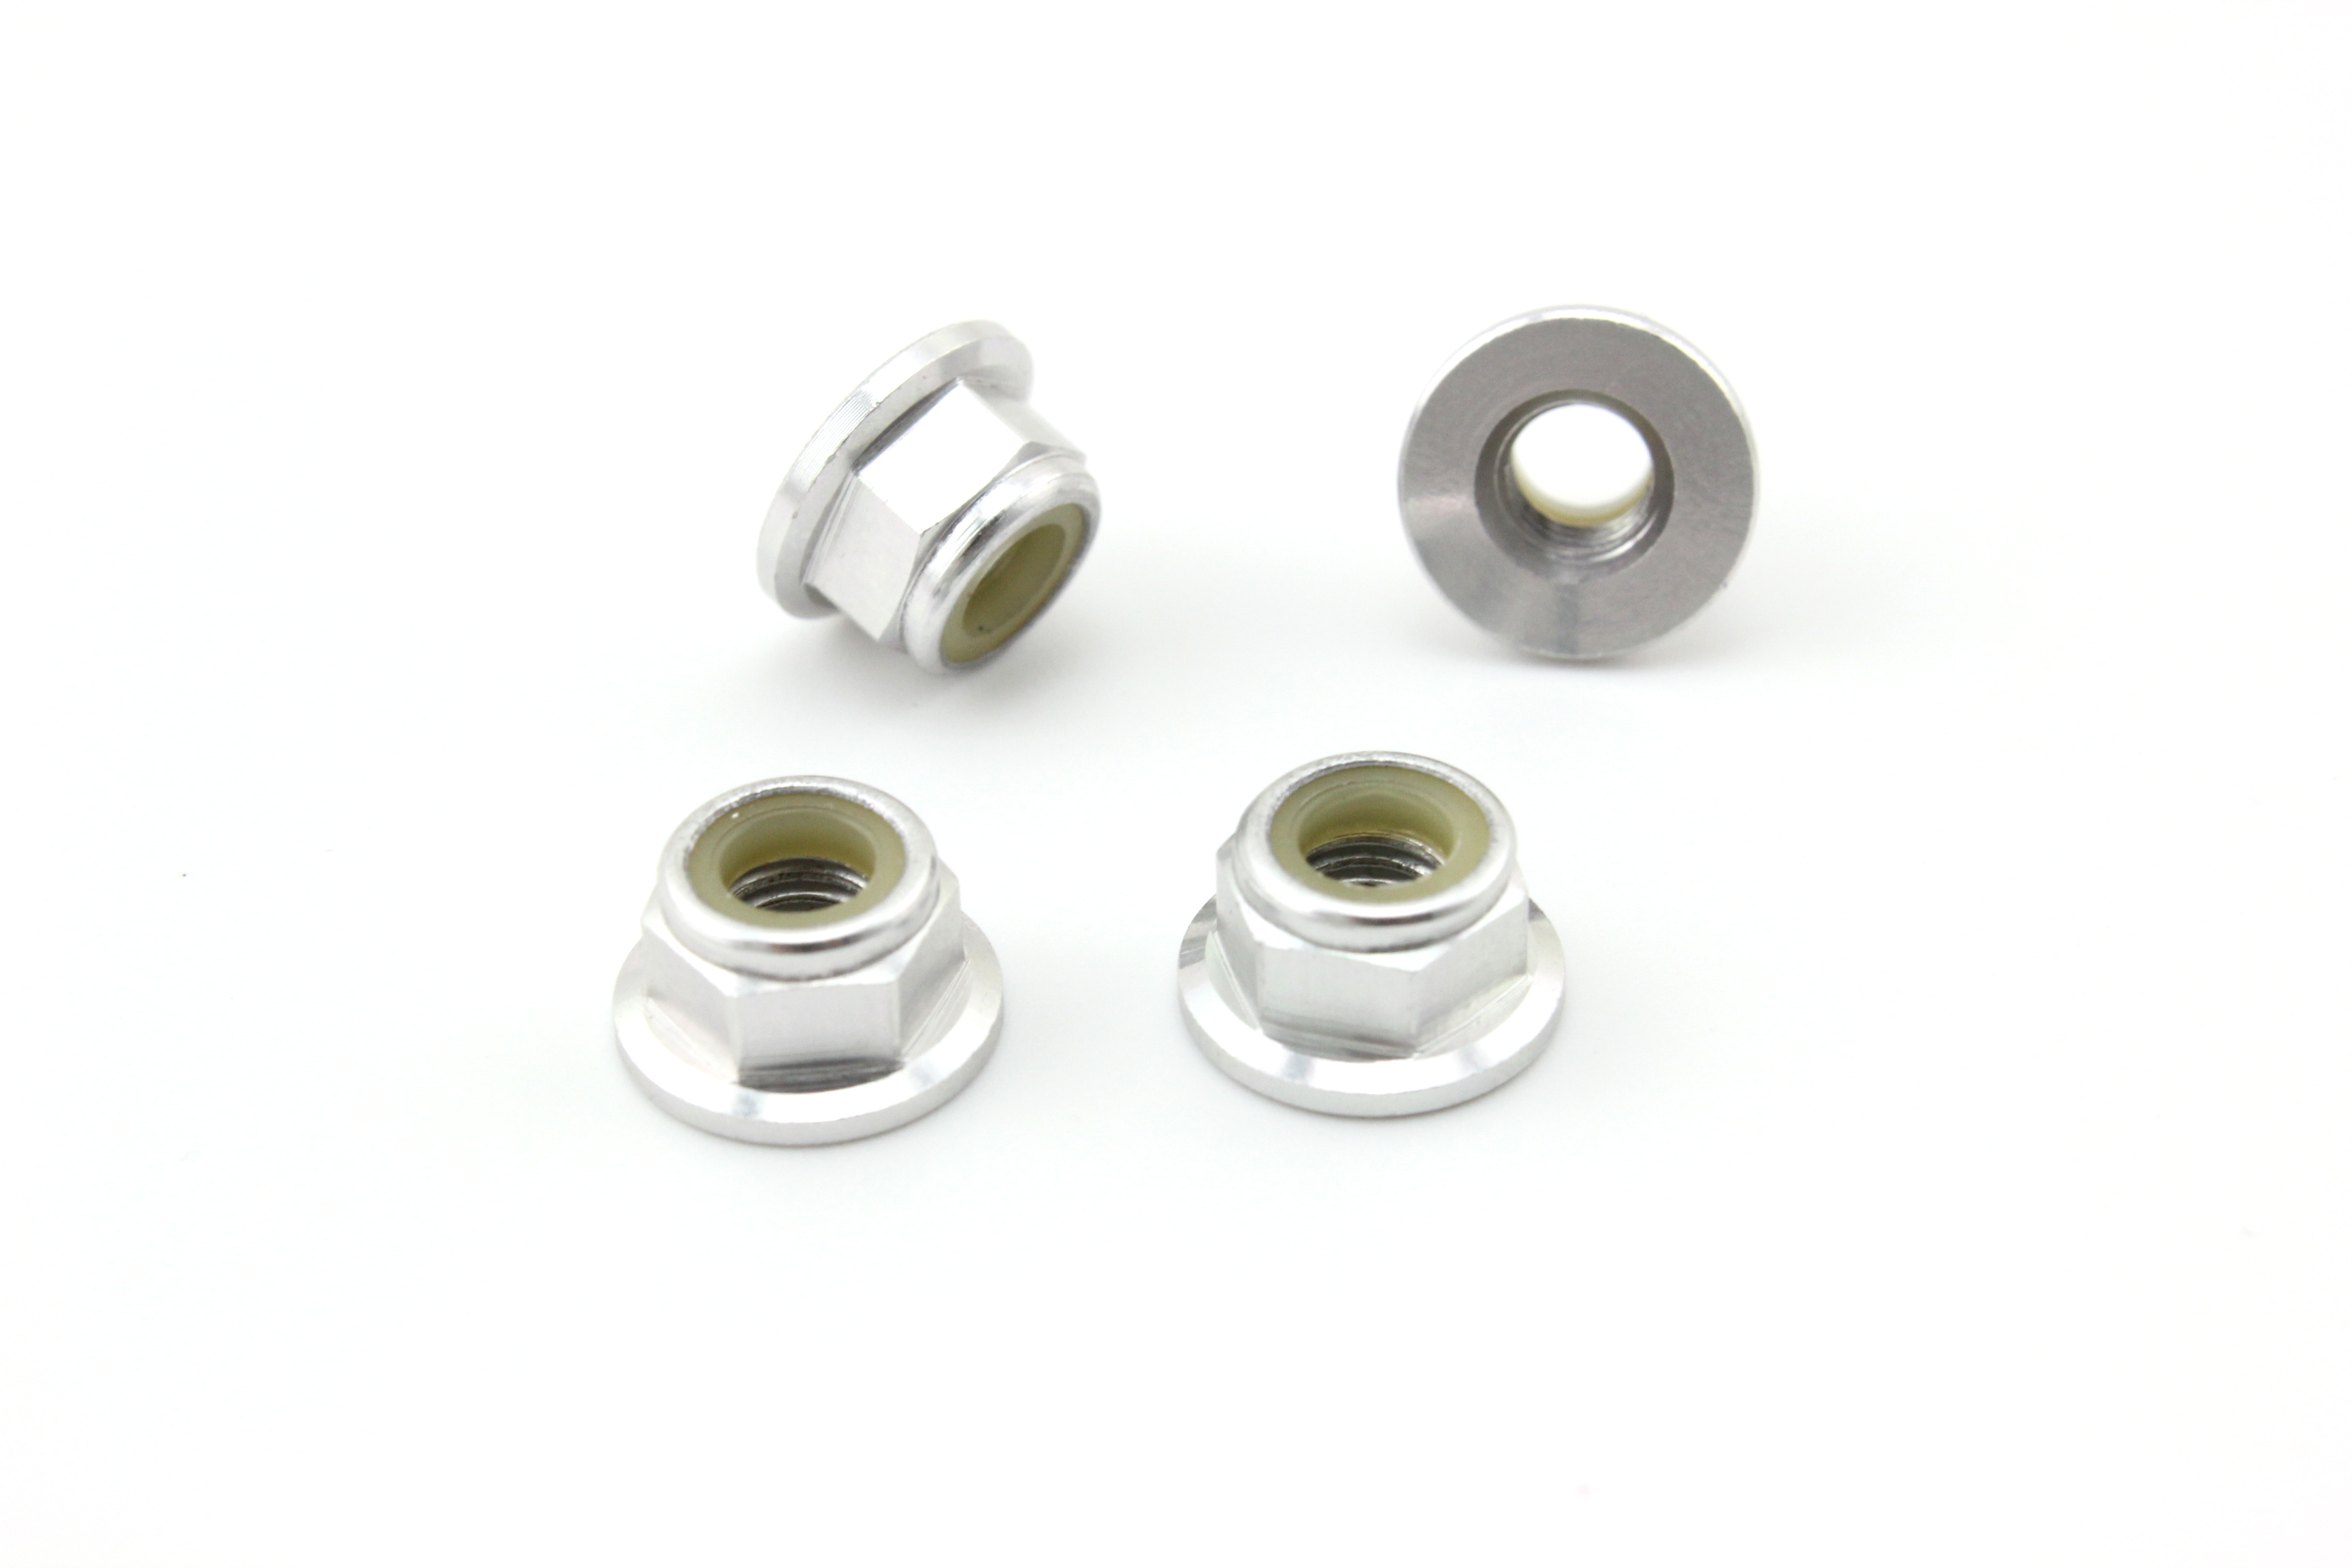 M5 Locknut (7075 ALU) 4pcs